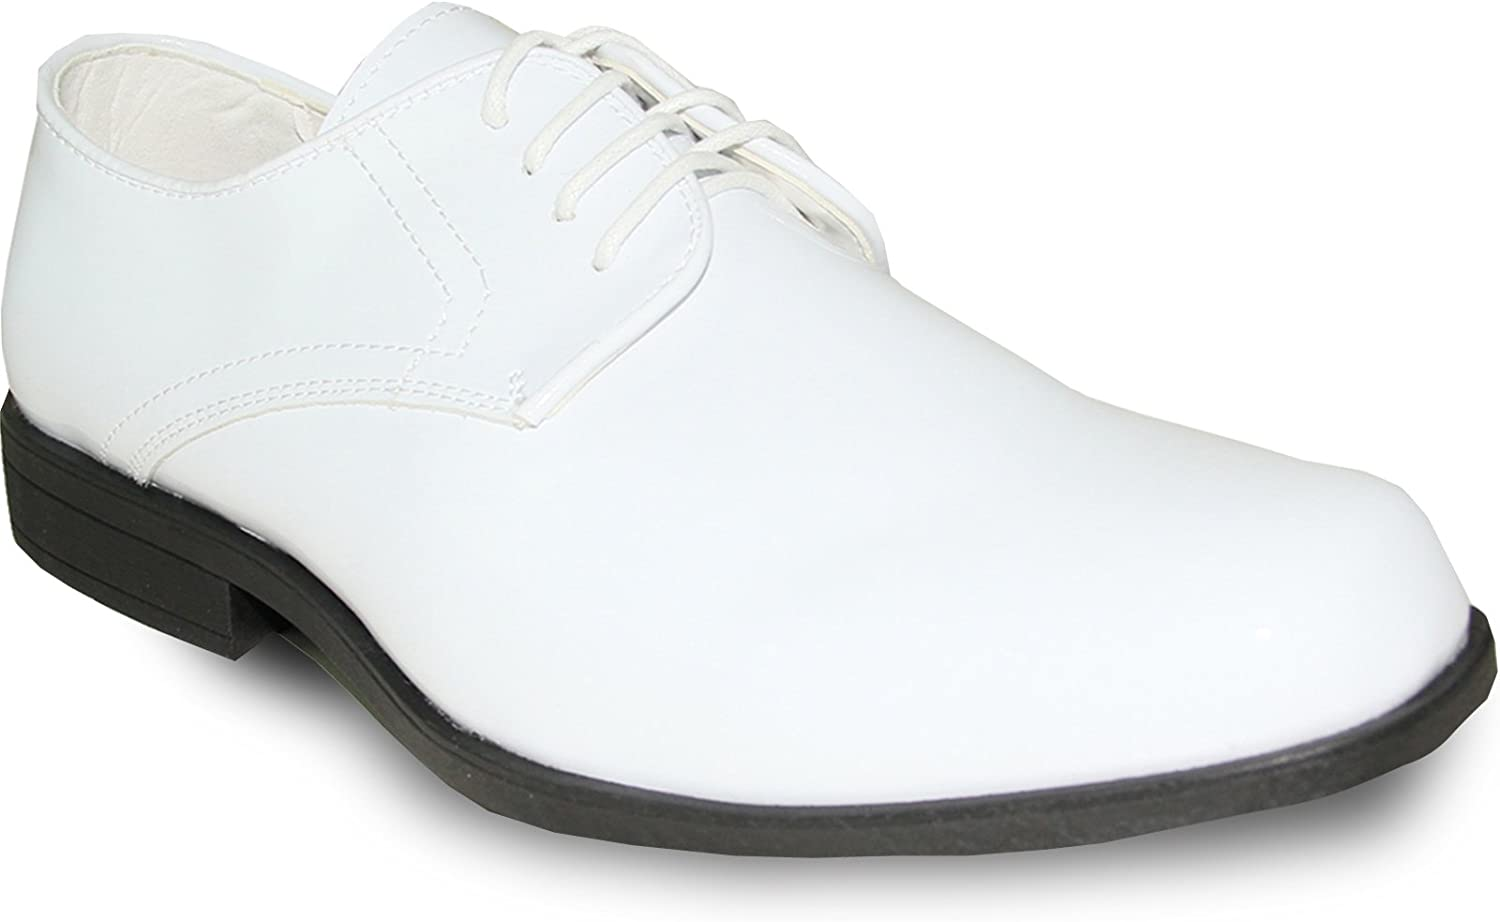 Jean Yves Dress shoes JY01 Classic Tuxedo for Wedding, Prom and Formal Event